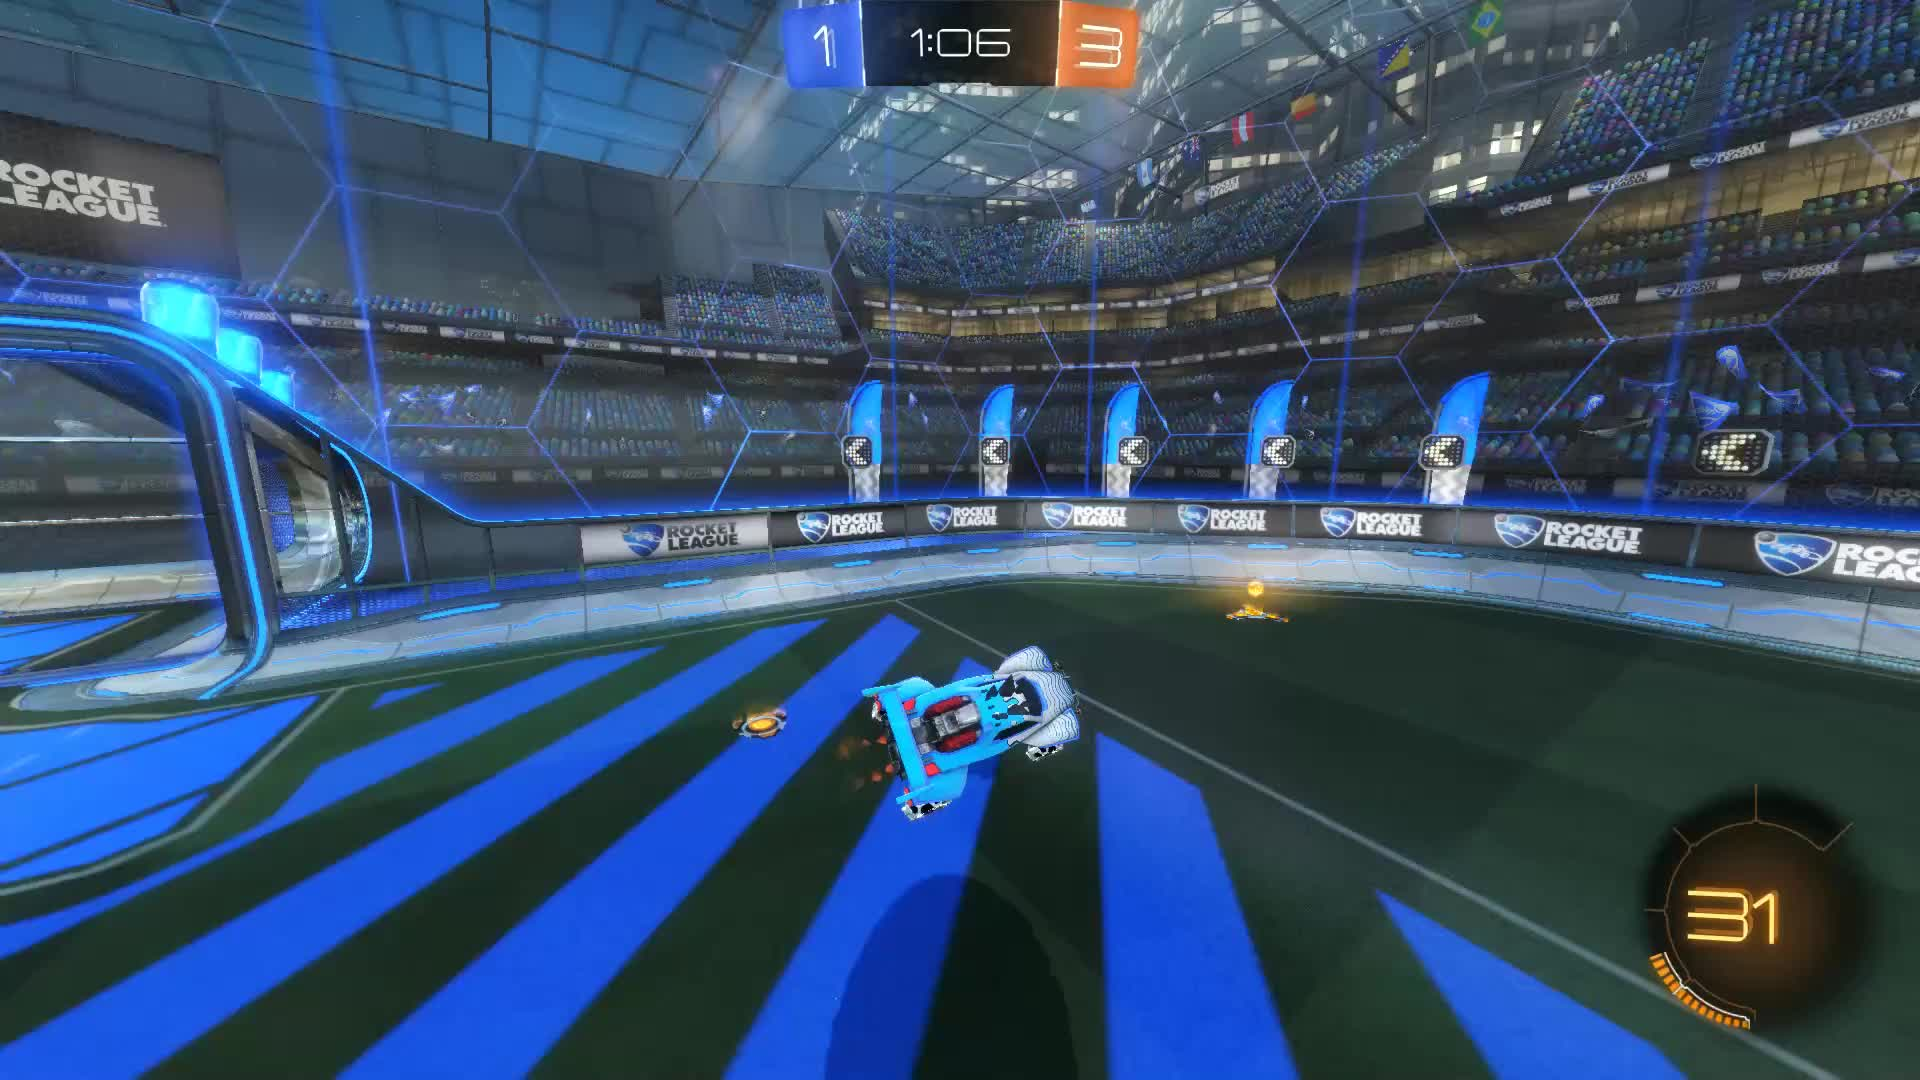 C_D_BRADL3Y_41, Gif Your Game, GifYourGame, Goal, Rocket League, RocketLeague, Goal 5: C_D_BRADL3Y_41 GIFs